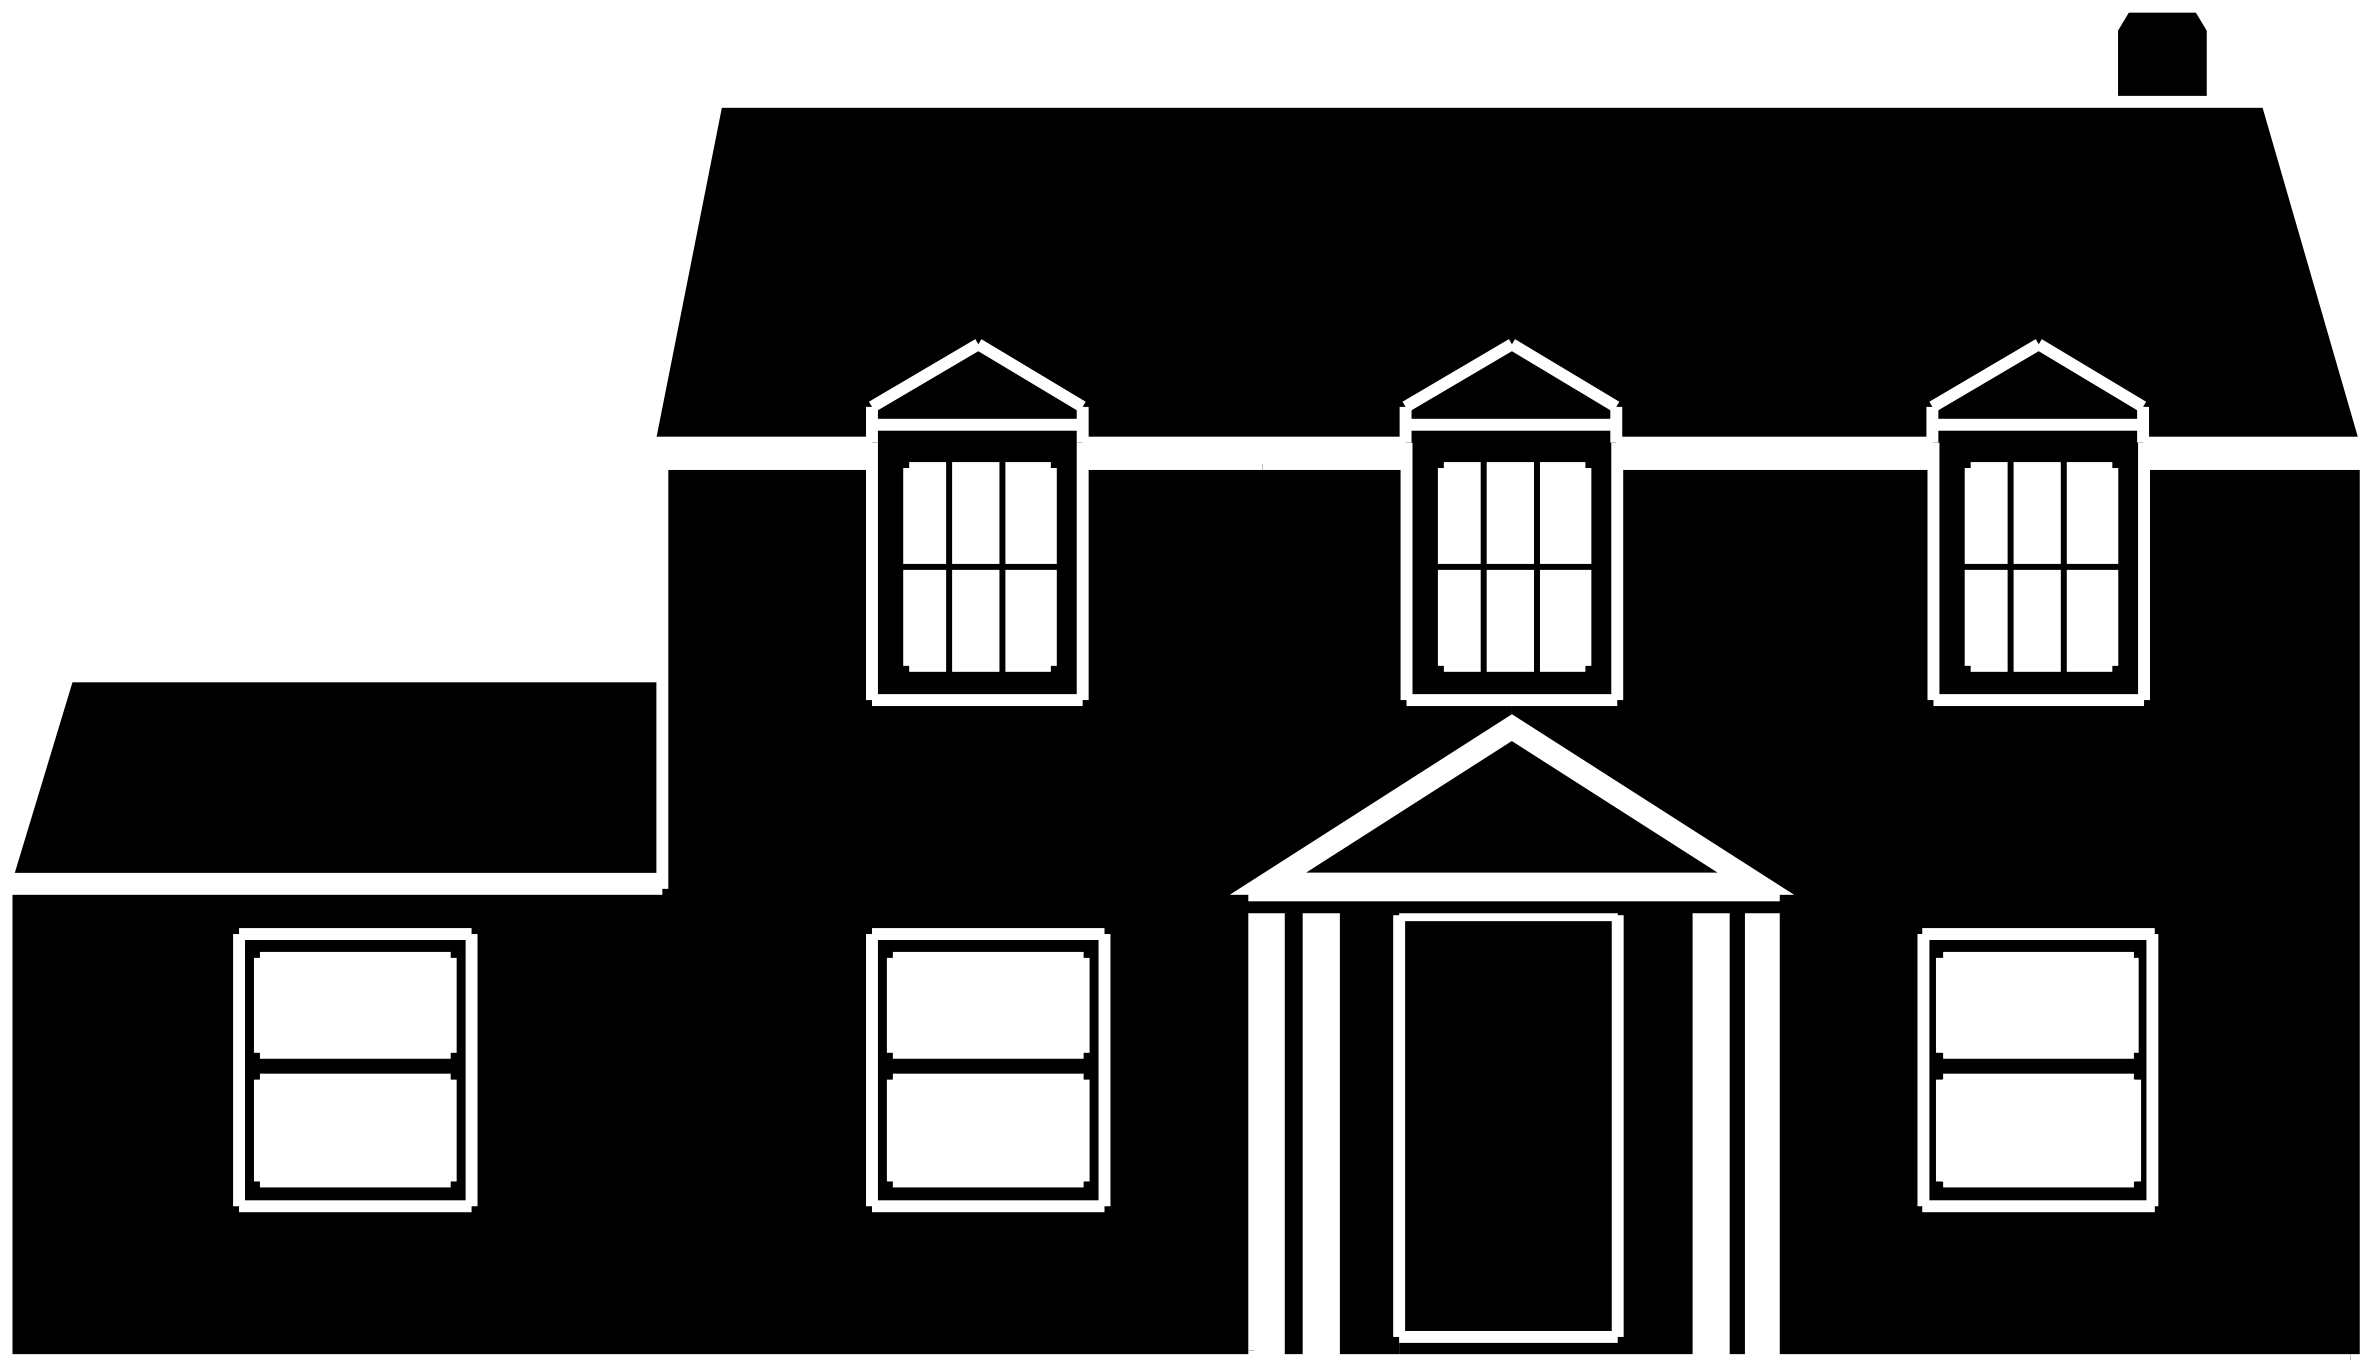 House black and white clipart black and white house - PNG House Black And White